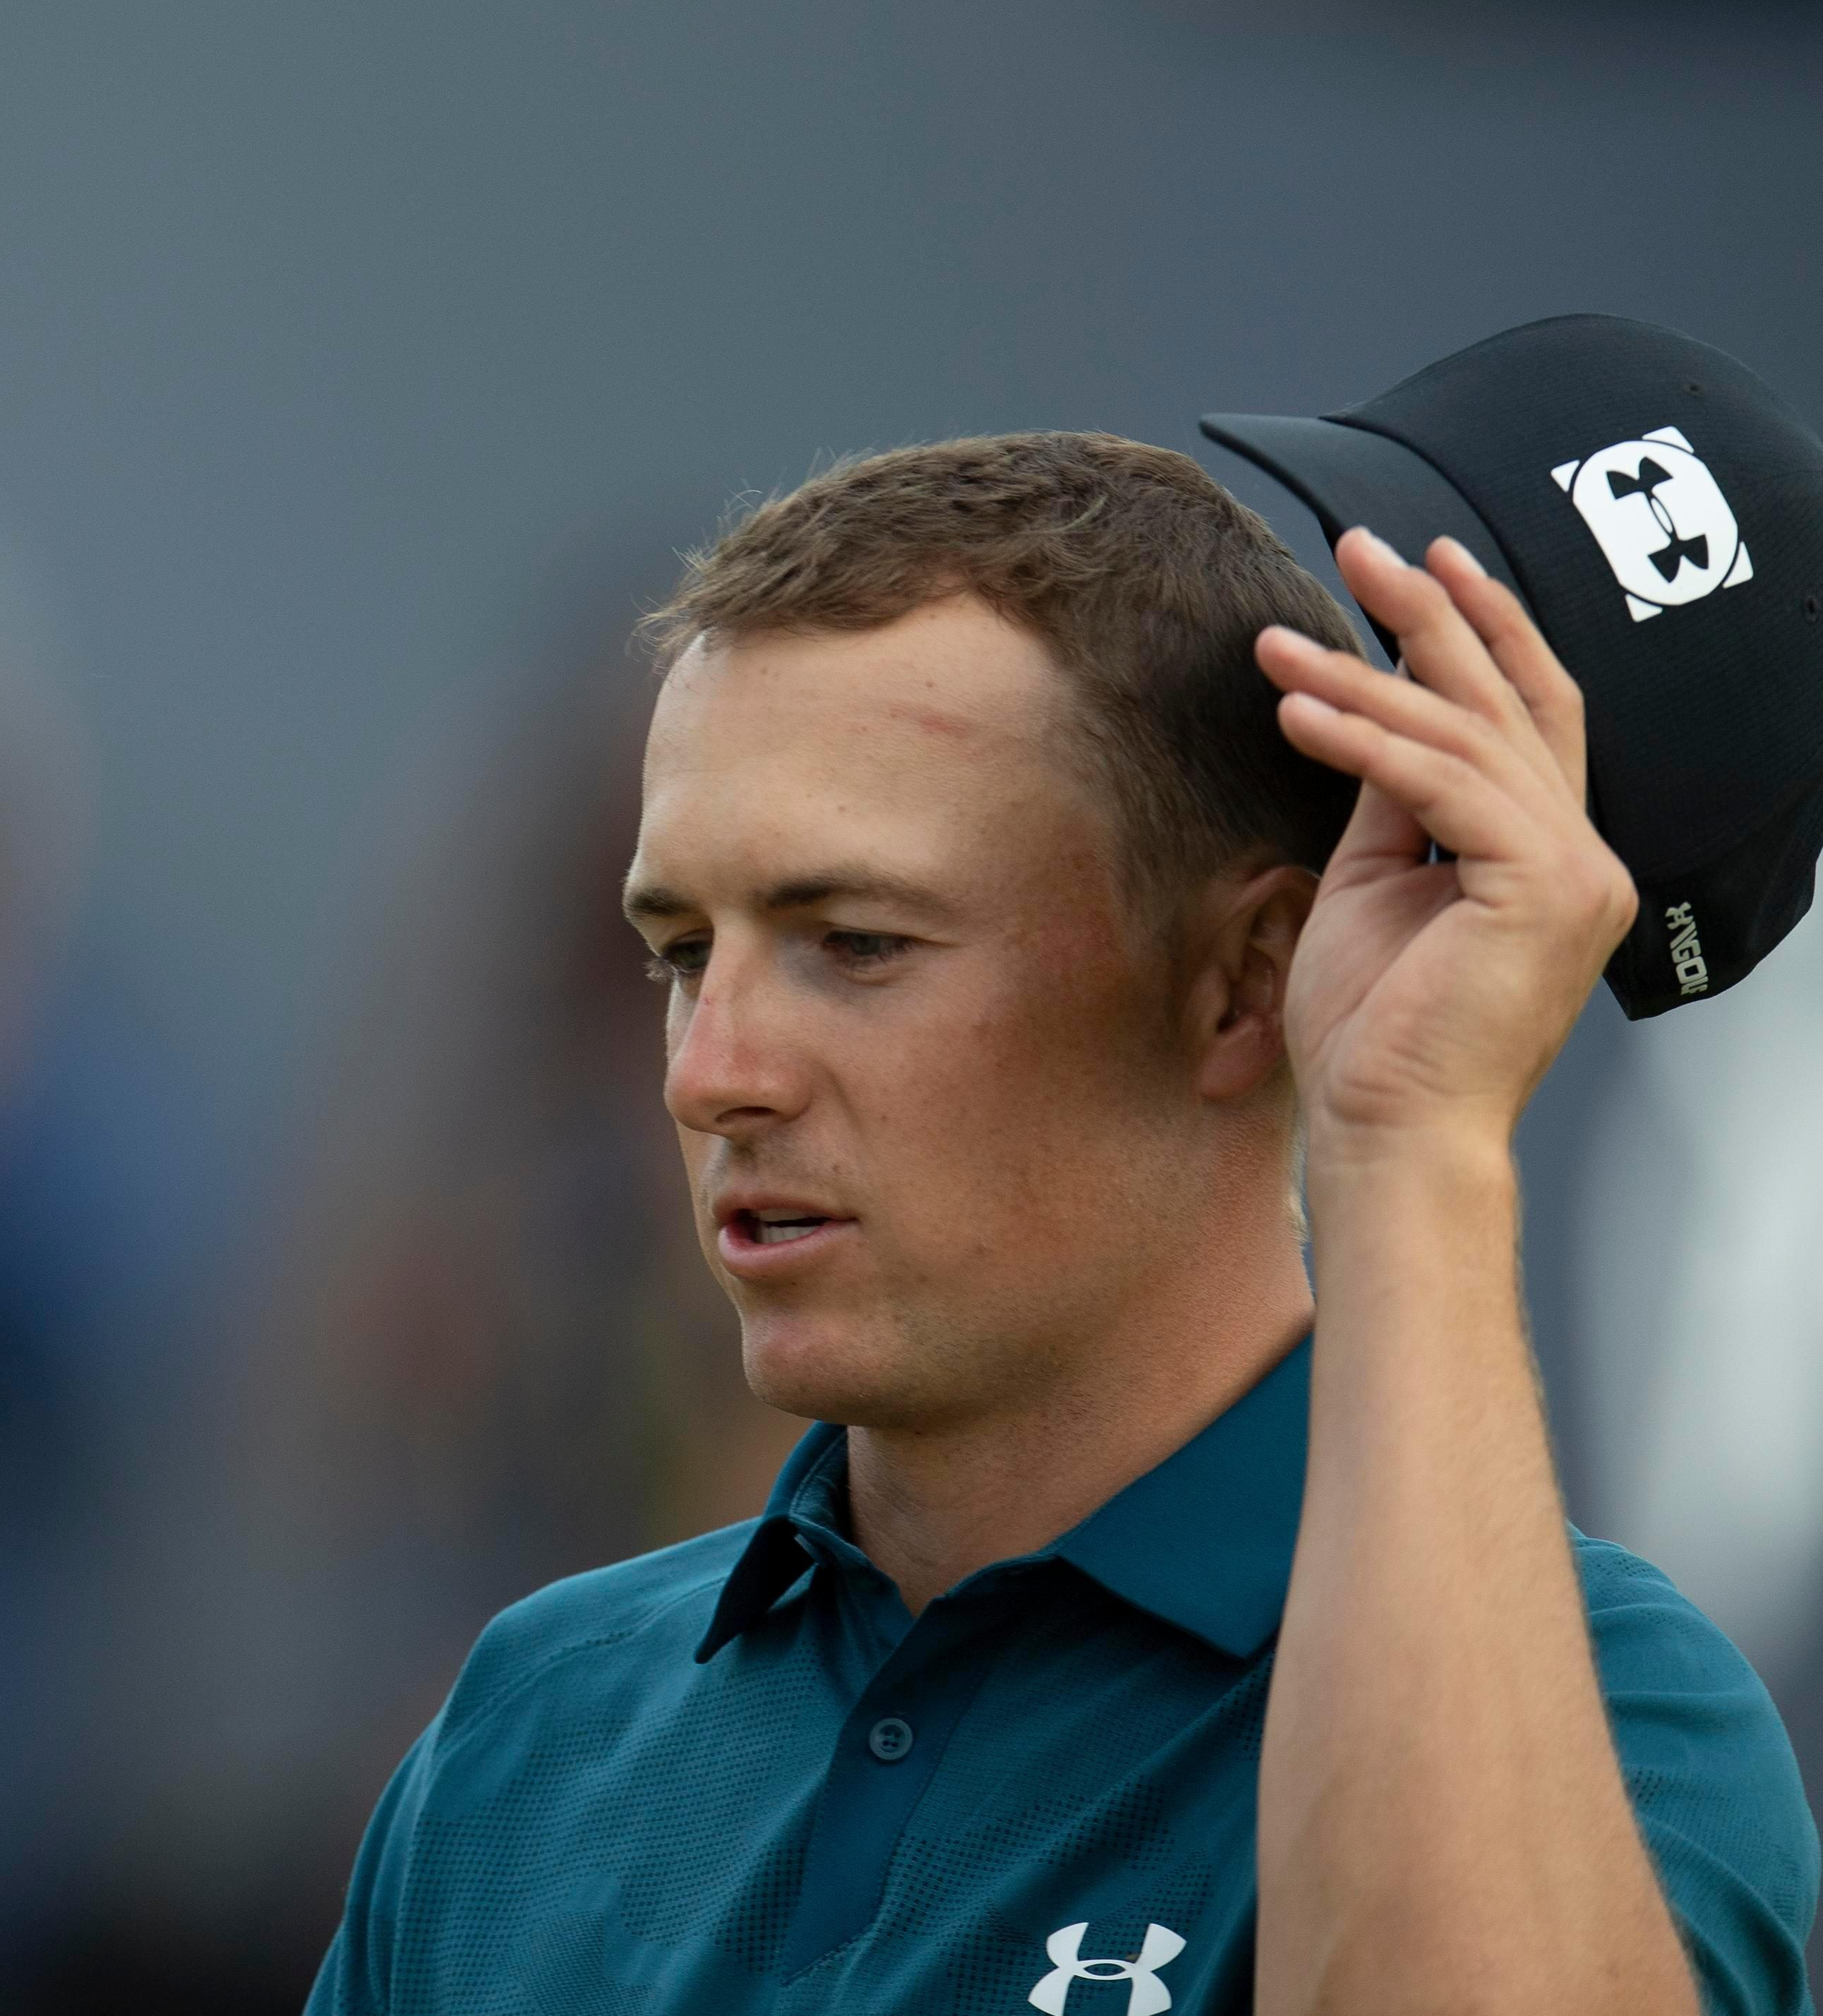 Jordan Spieth took a weight off his shoulders quite literally with this haircut